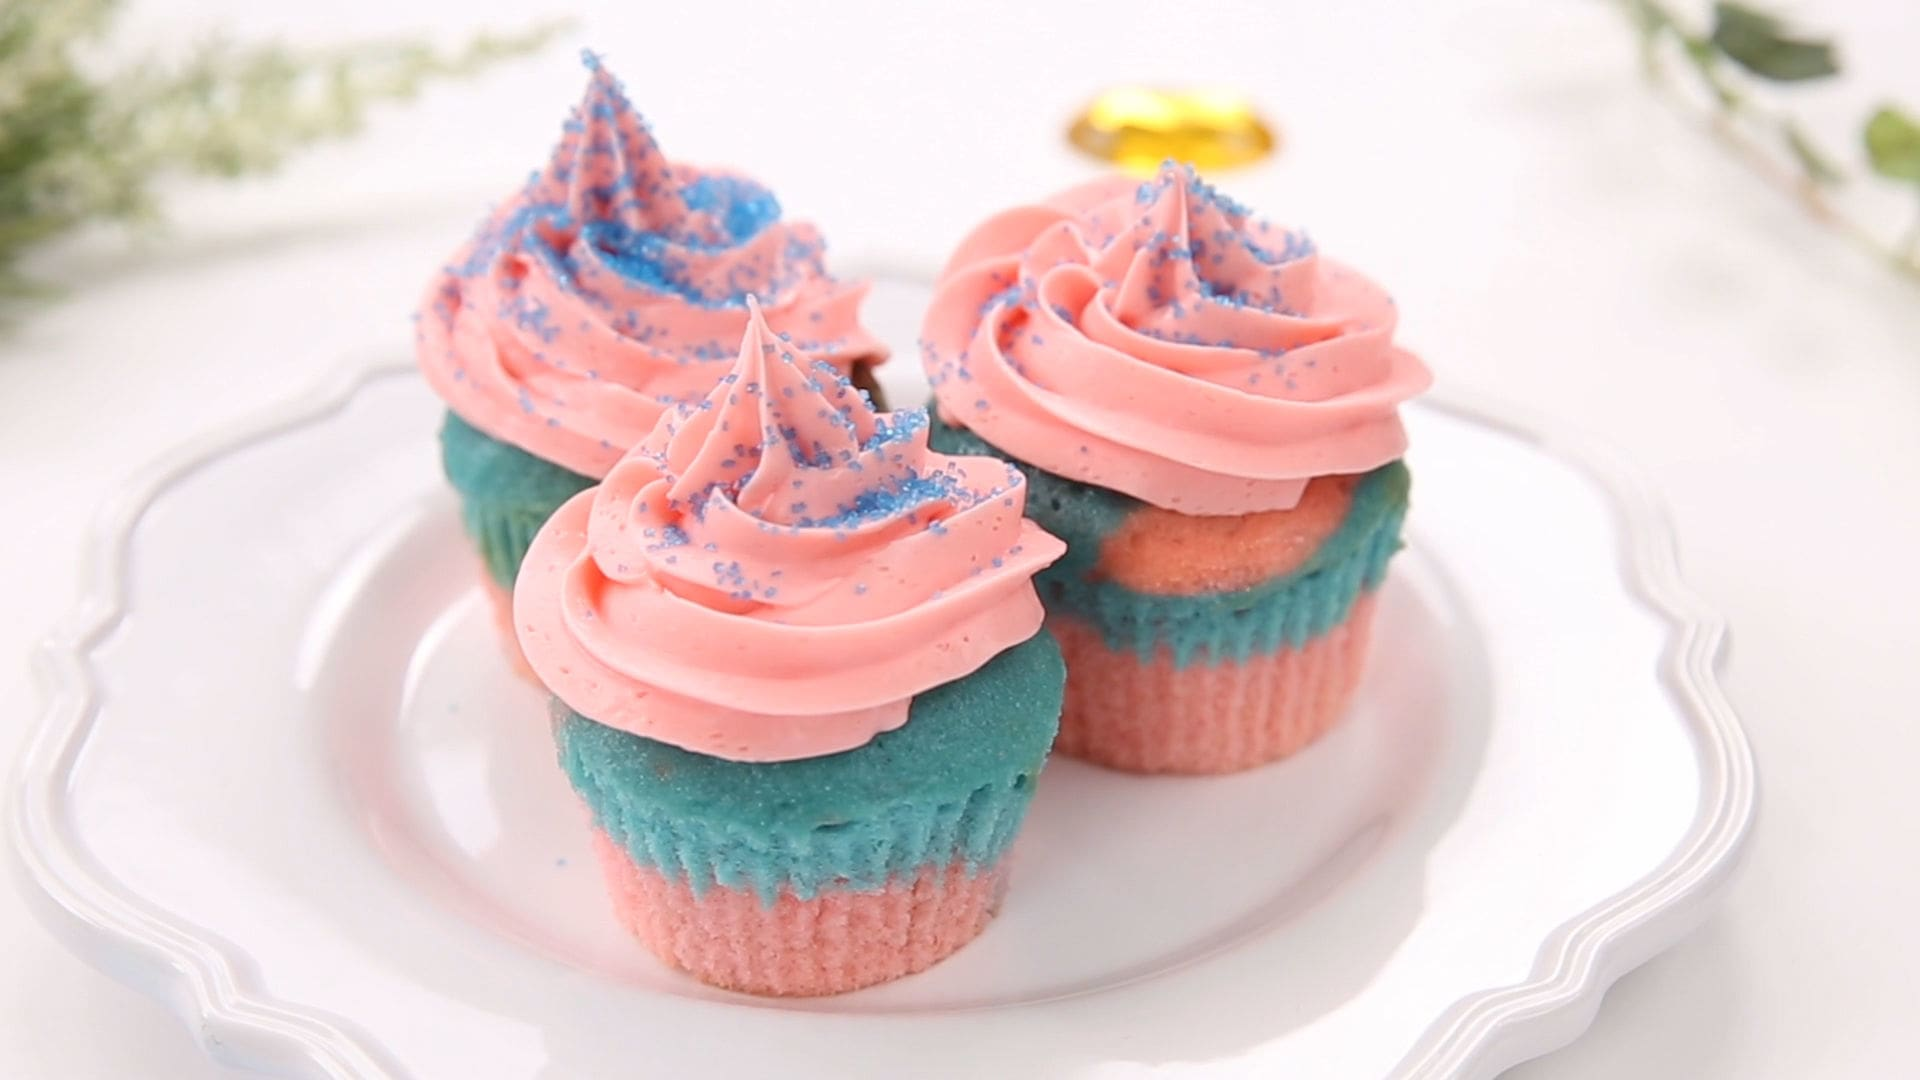 Aurora's Blue and Pink Cupcakes | Dishes by Disney